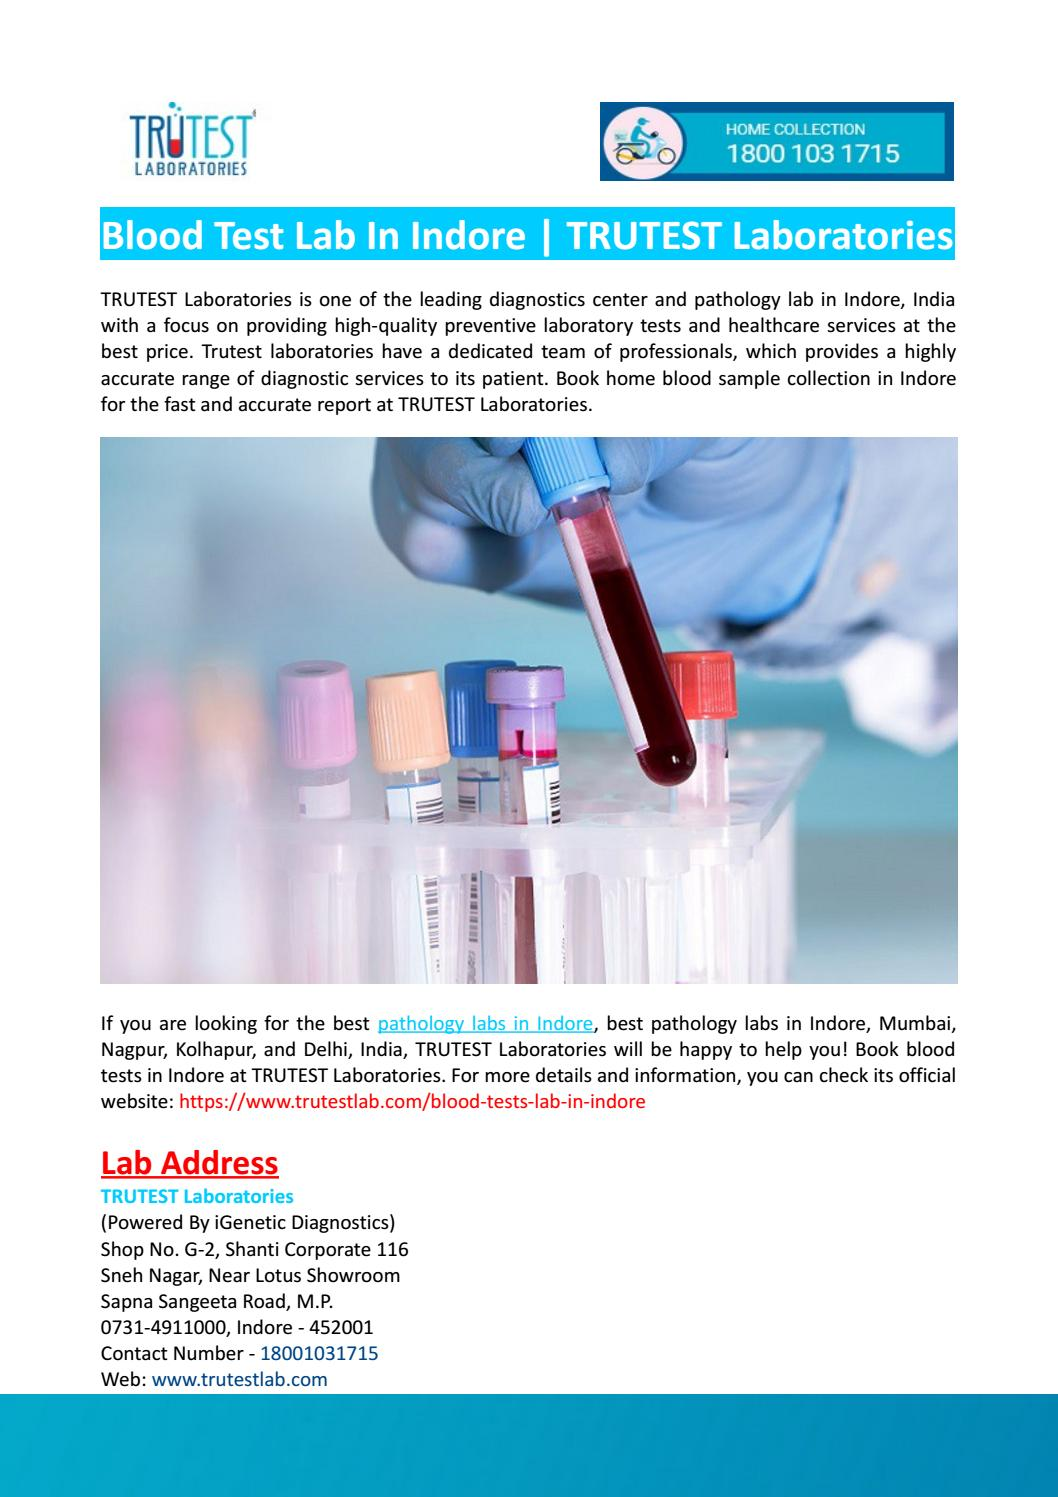 Blood Test Lab in Indore-TRUTEST Laboratories by TRUTEST